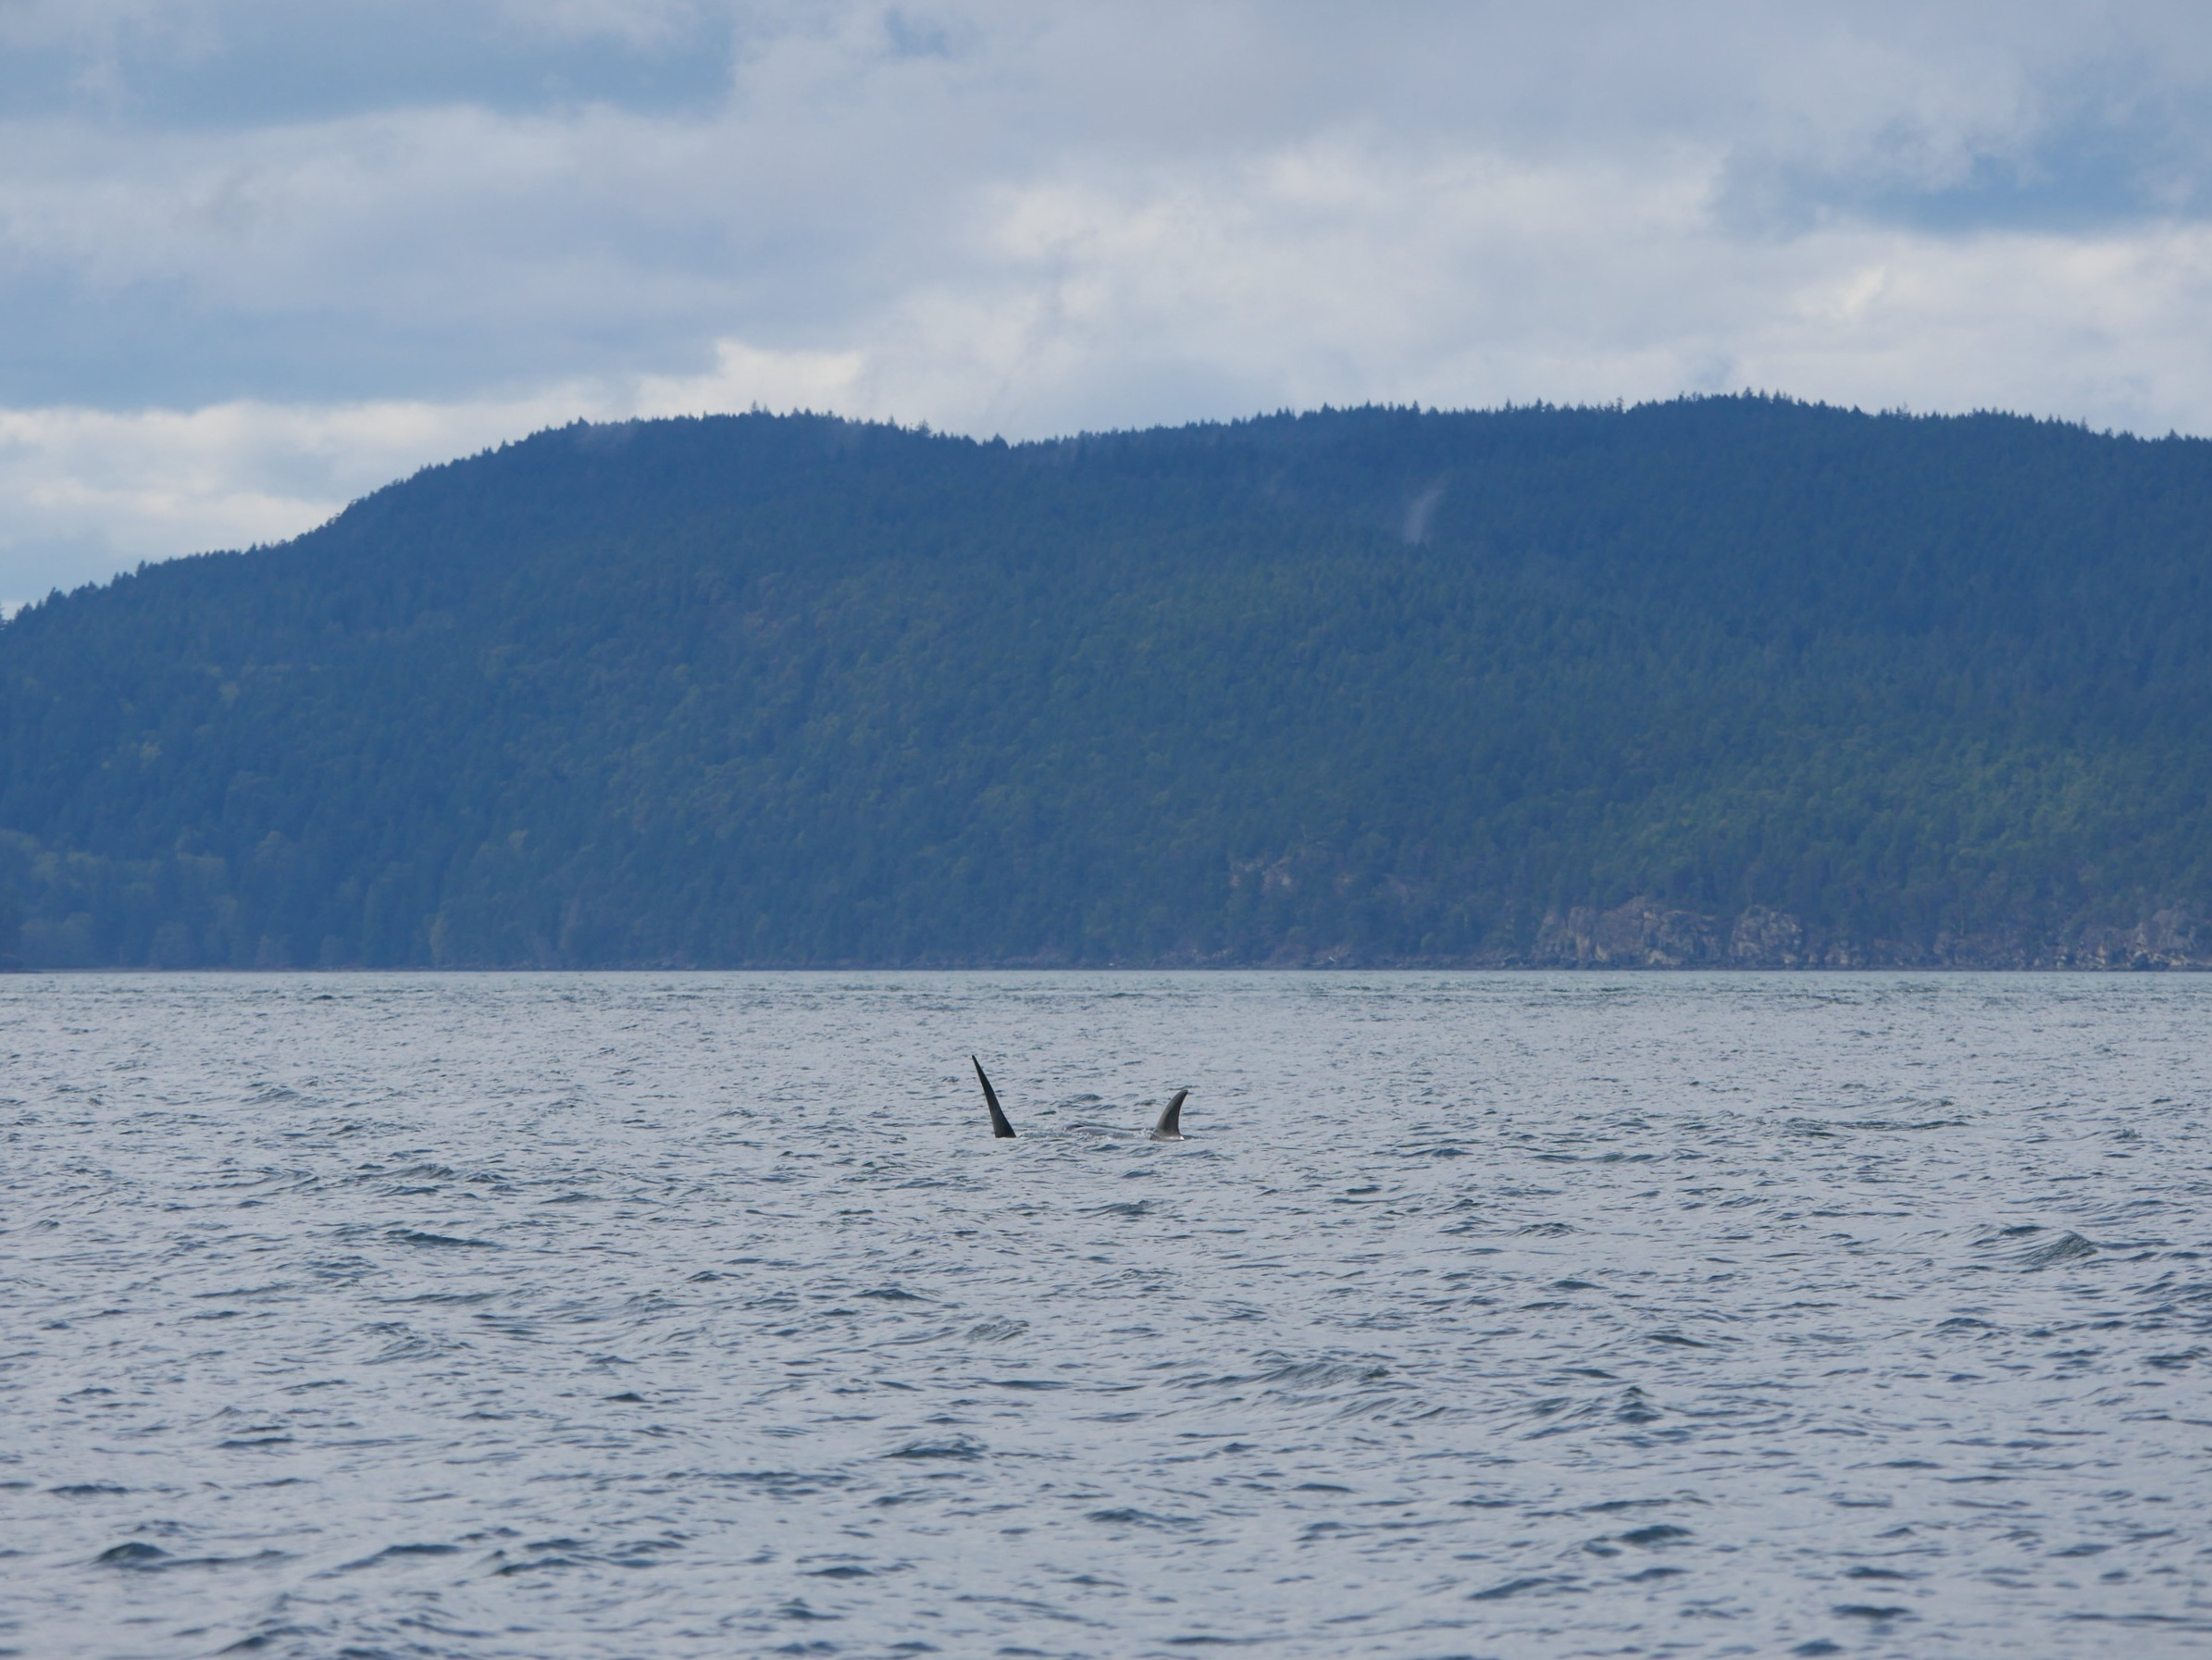 Typical view of what a hunt looks like! Most of the work is done under the surface and you can see the whales' fins zig-zagging around as they take turns catching their breath.